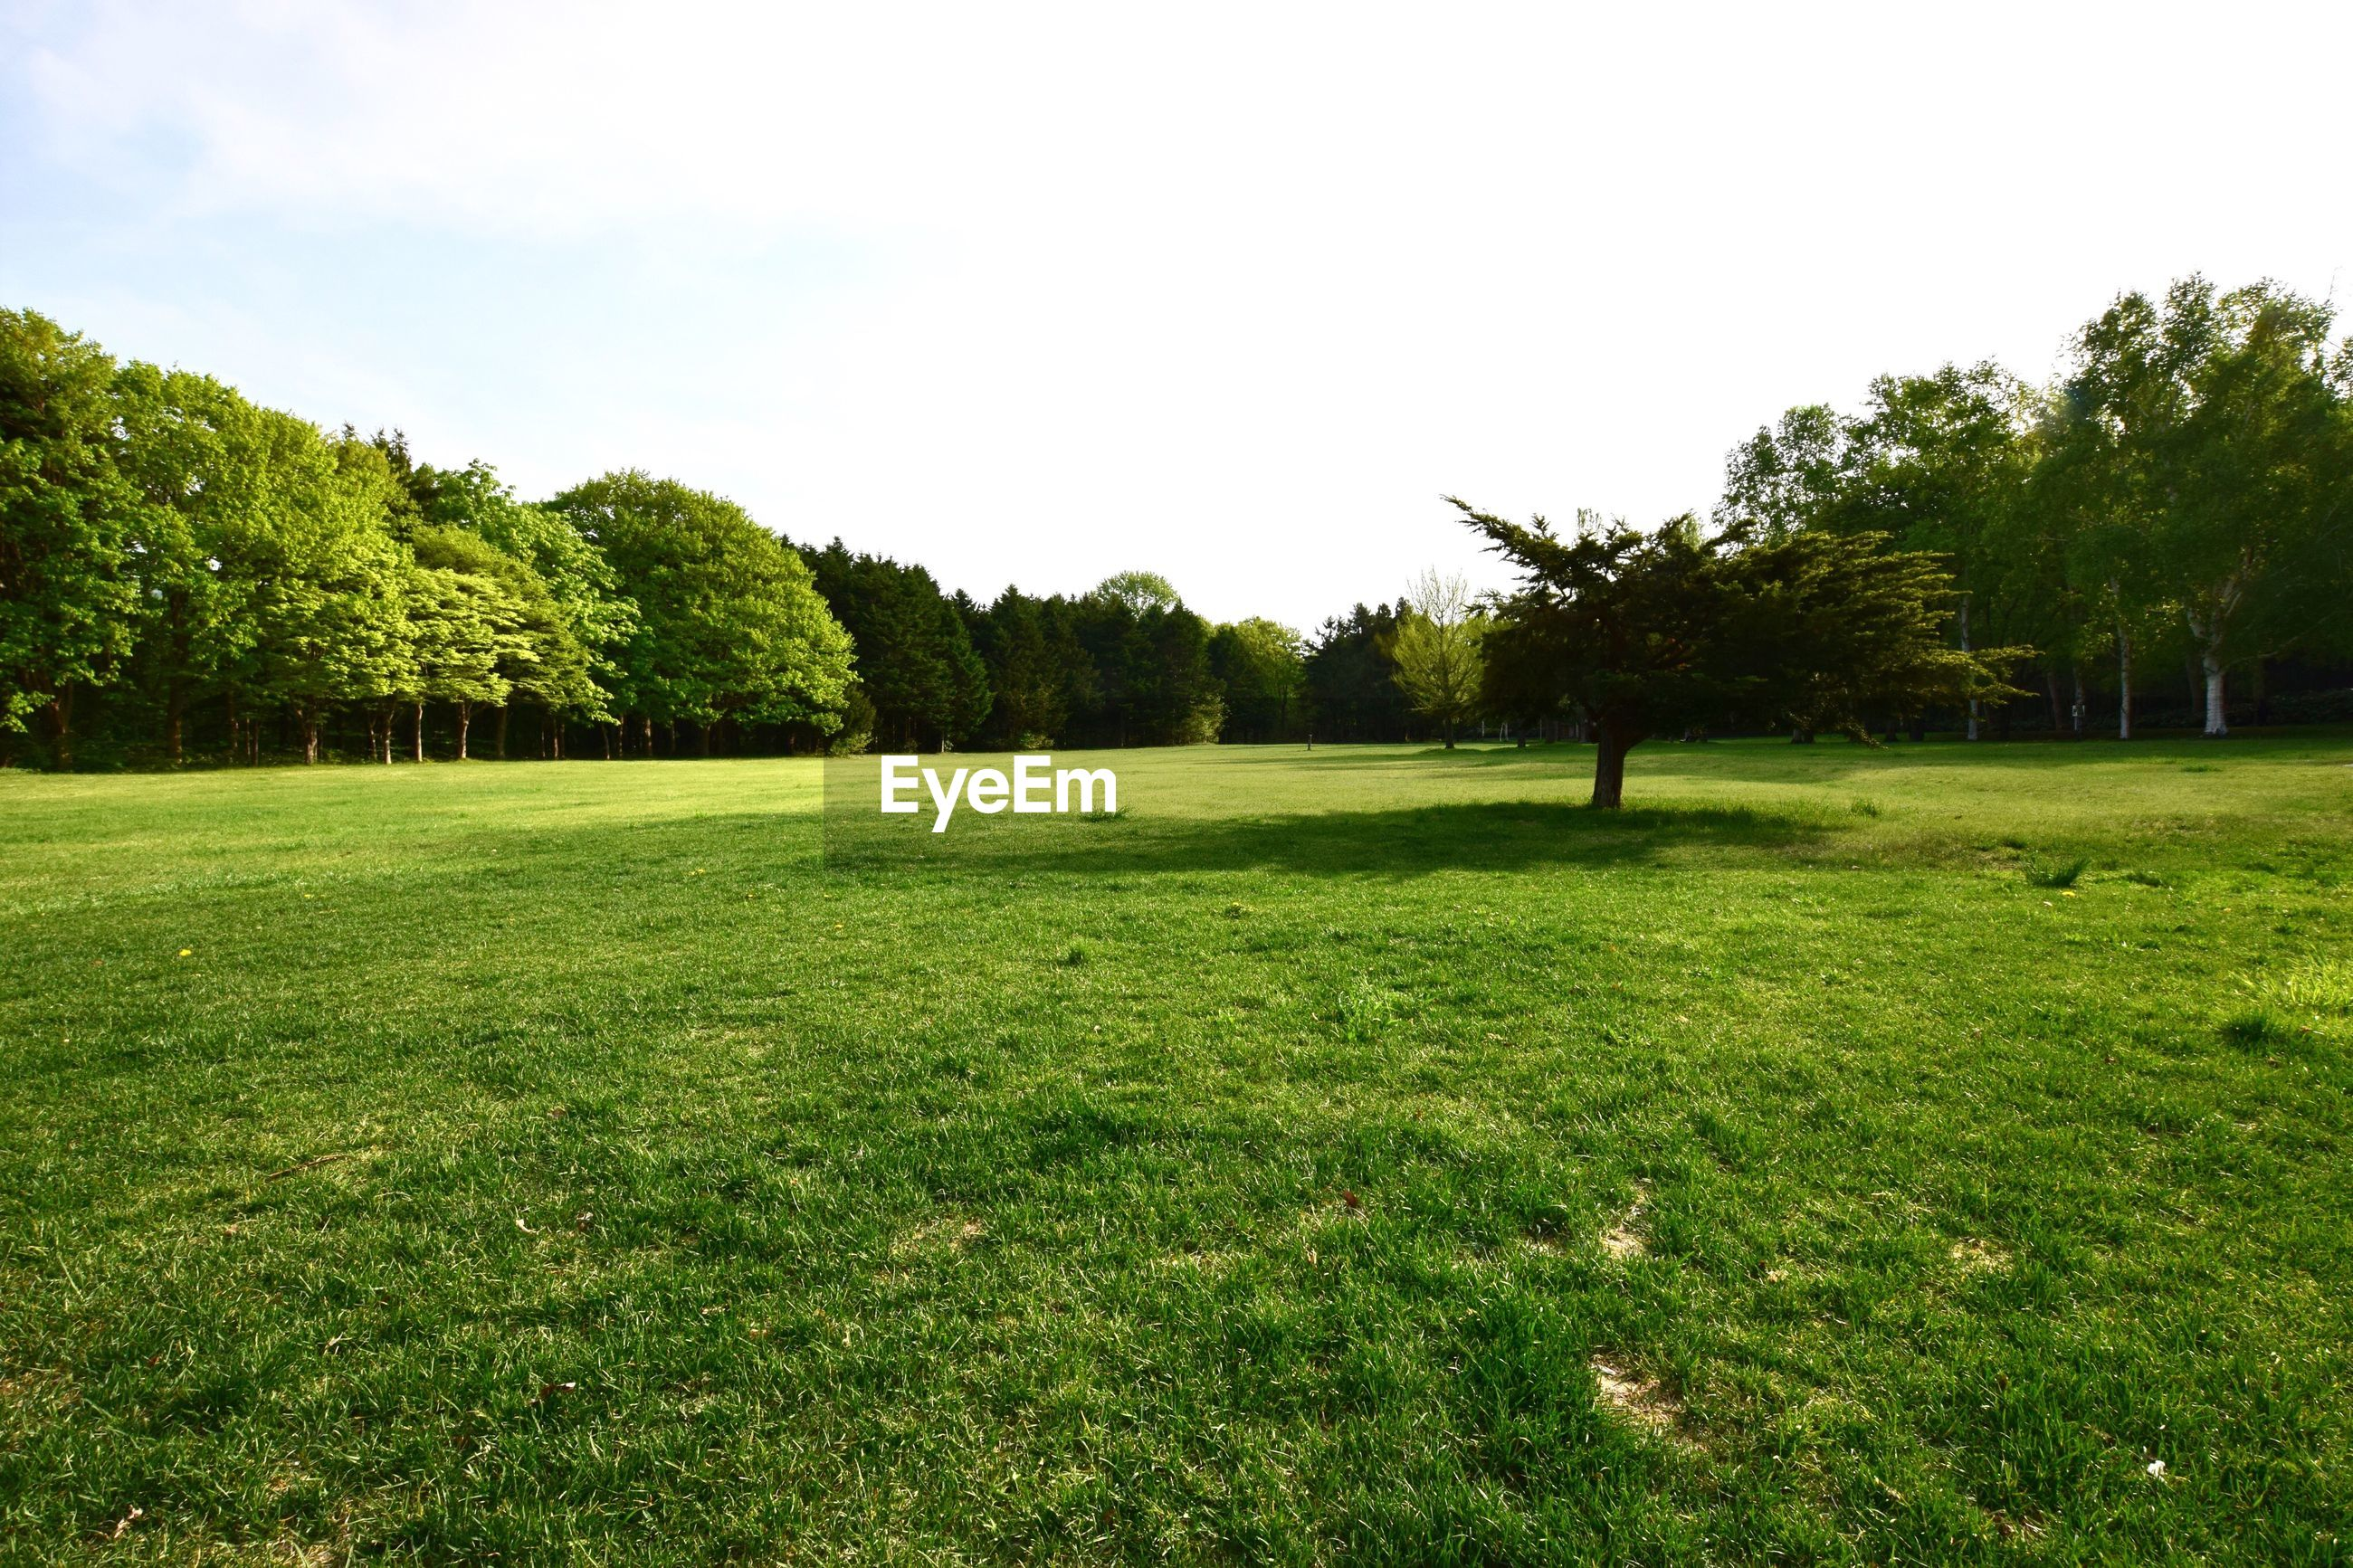 grass, tree, green color, growth, nature, field, landscape, beauty in nature, golf, green - golf course, golf course, no people, sky, outdoors, day